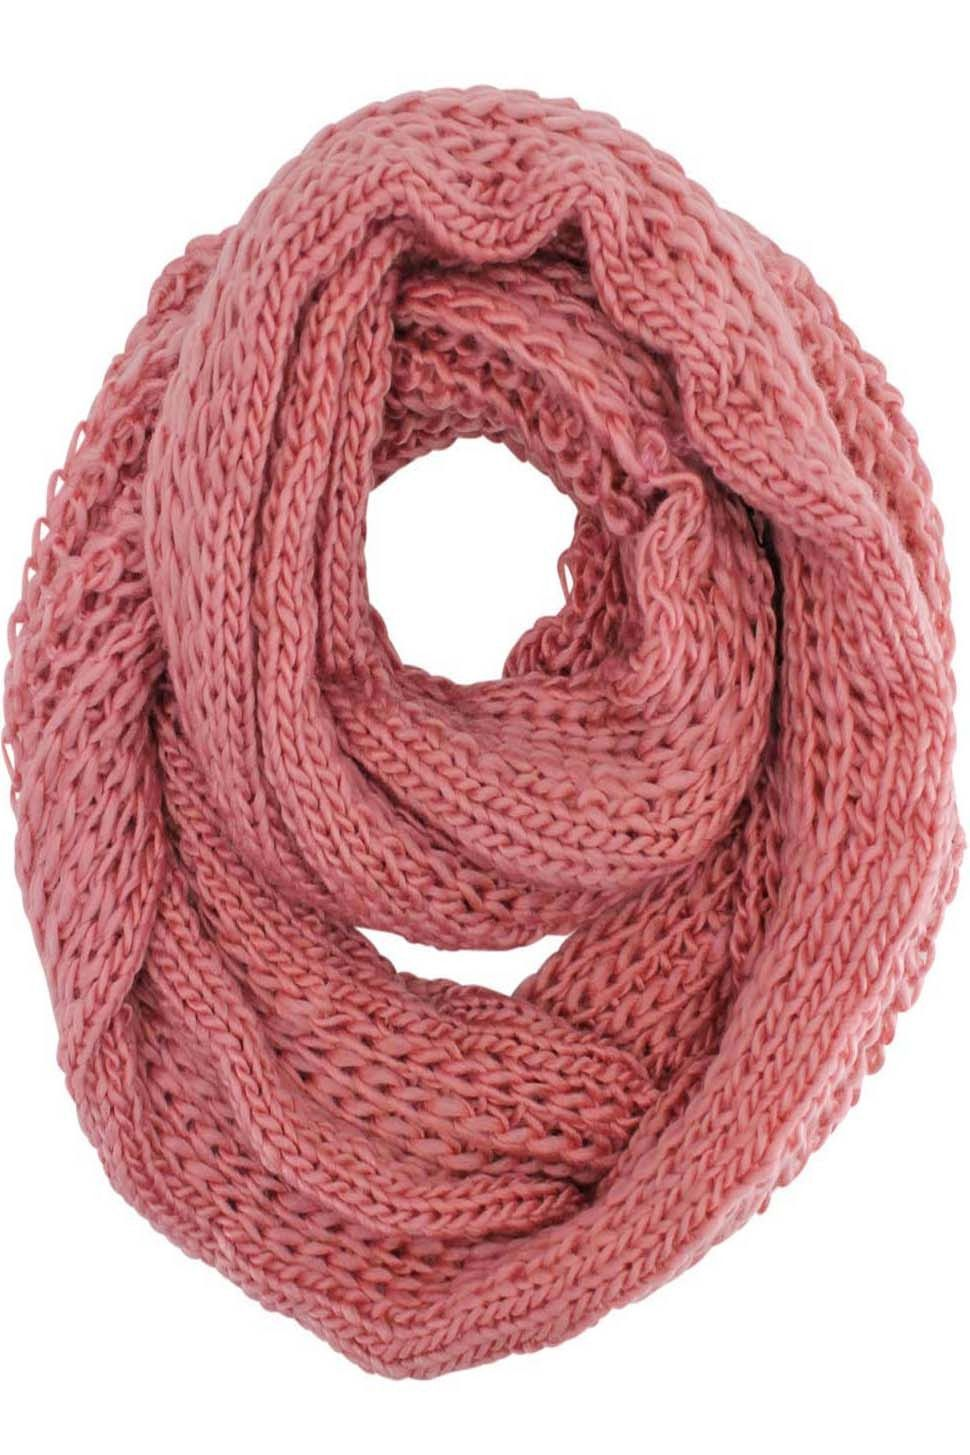 Simple Thick Knit Winter Circle Infinity Scarf | Products ...